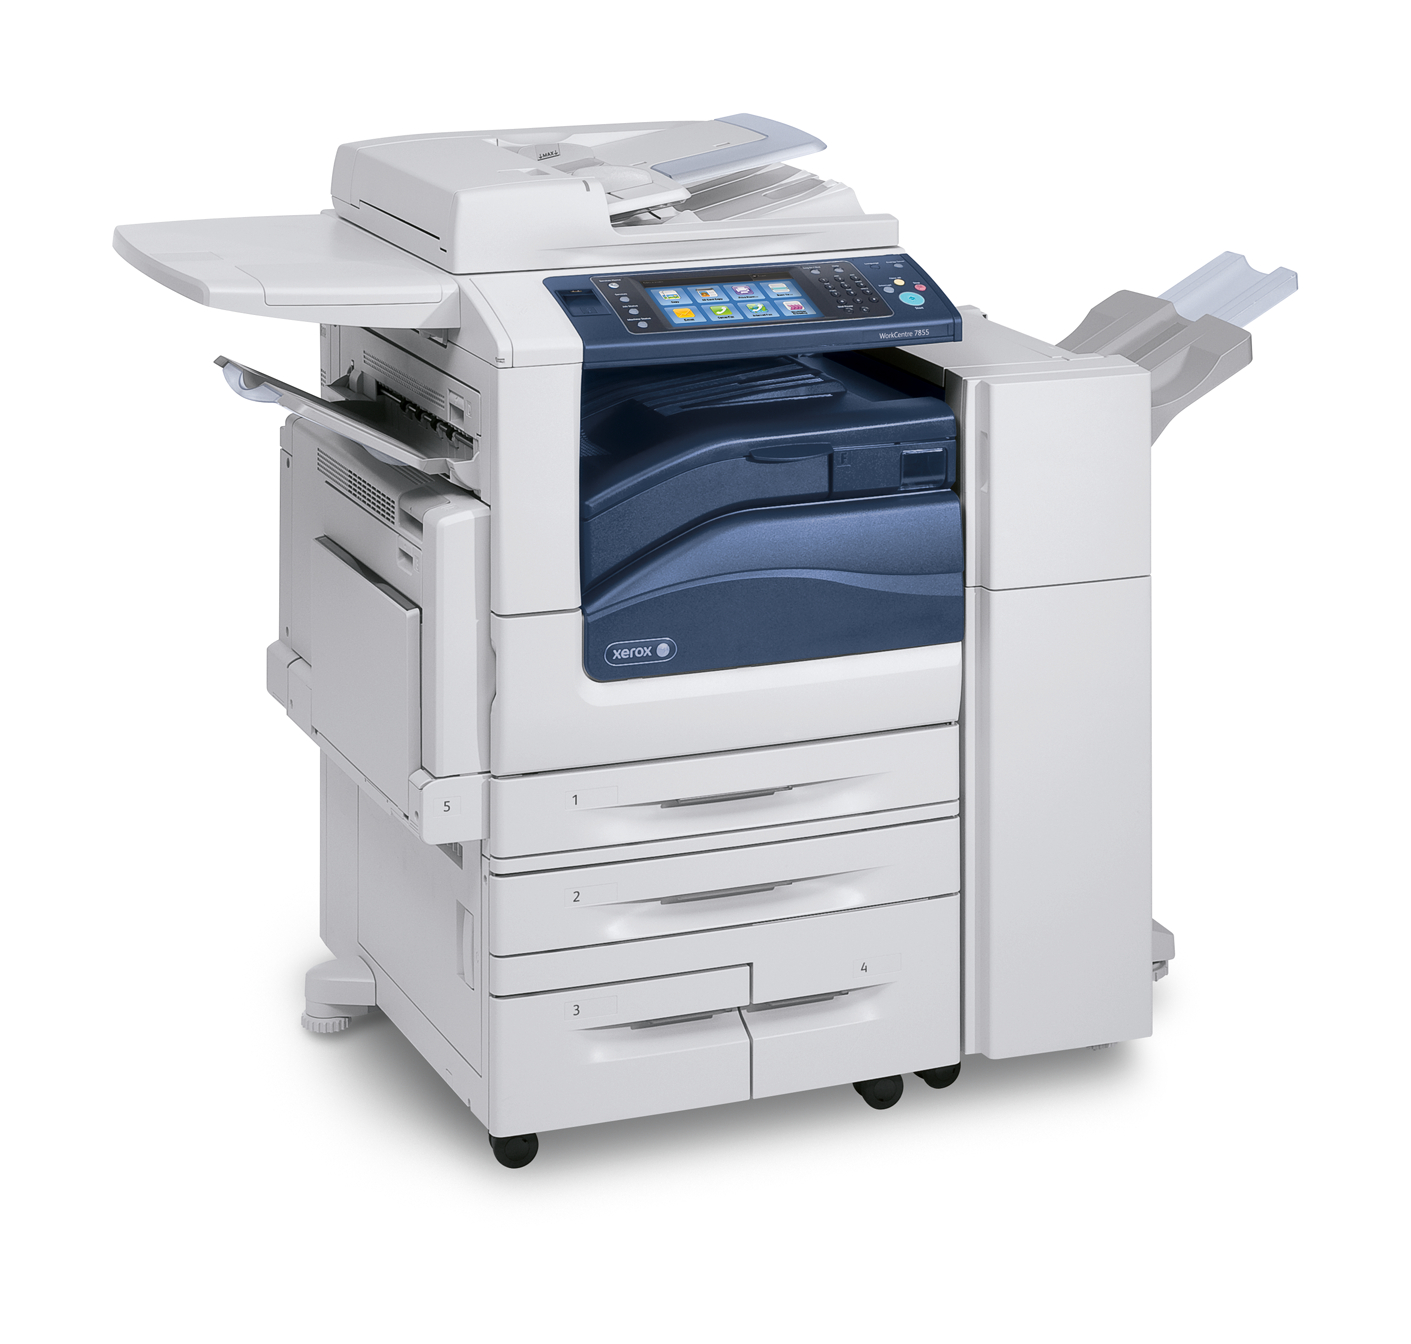 7845 xerox All In One Copier Sales 55316